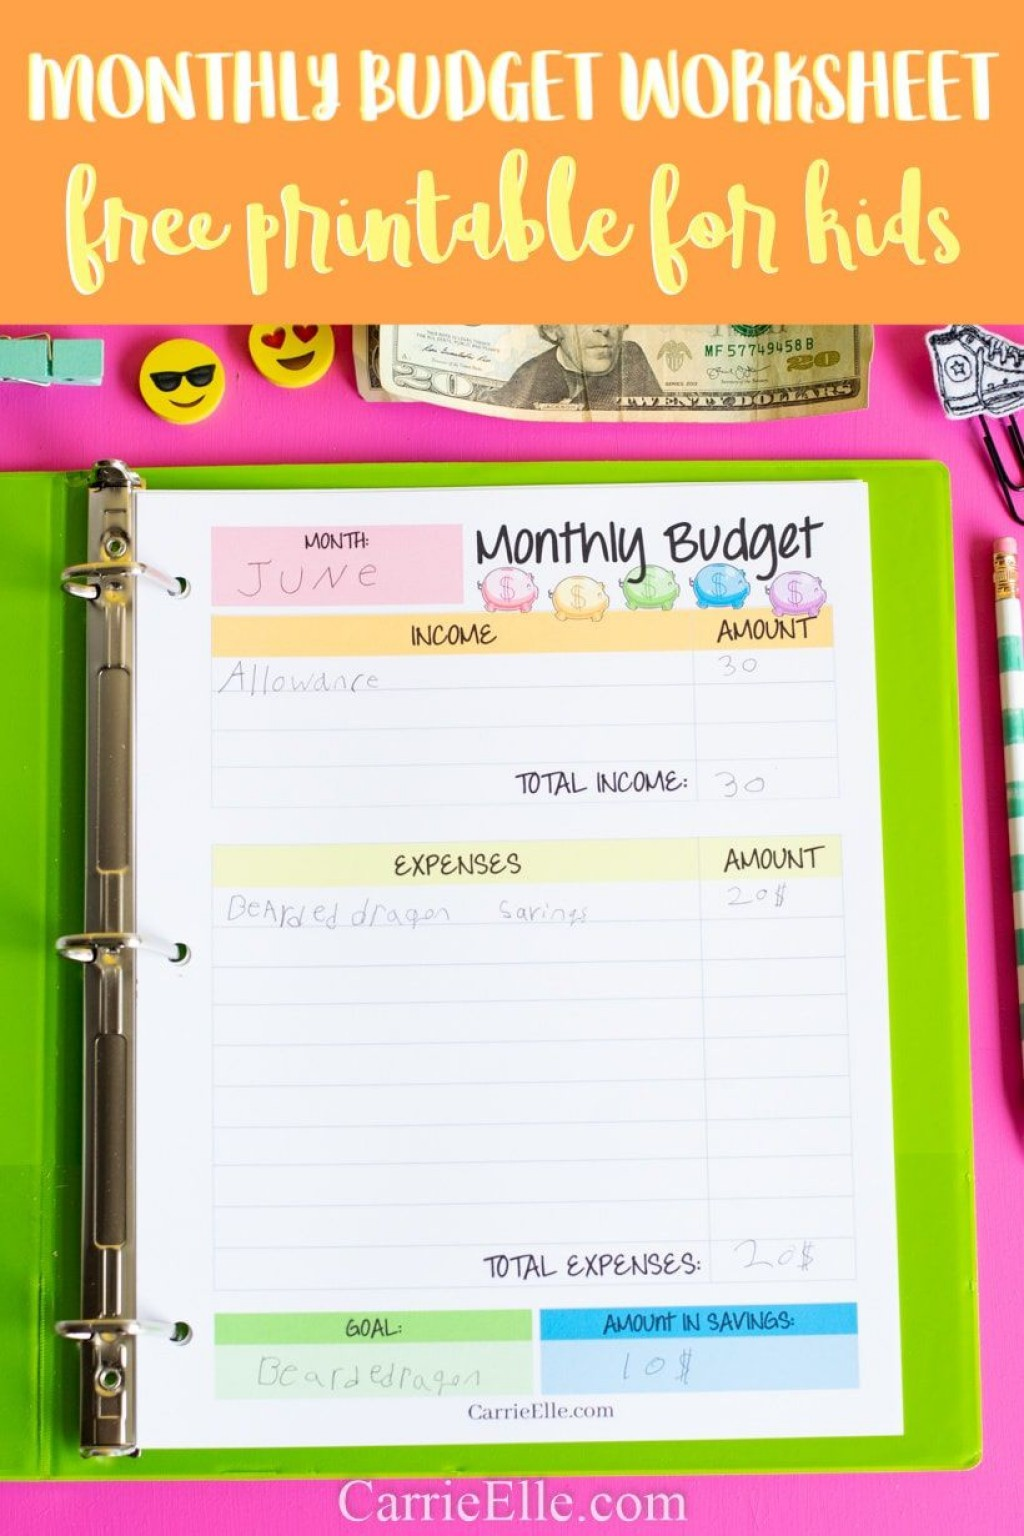 009 Excellent Free Monthly Budget Template Printable High Resolution  Simple Worksheet Household Planner UkLarge